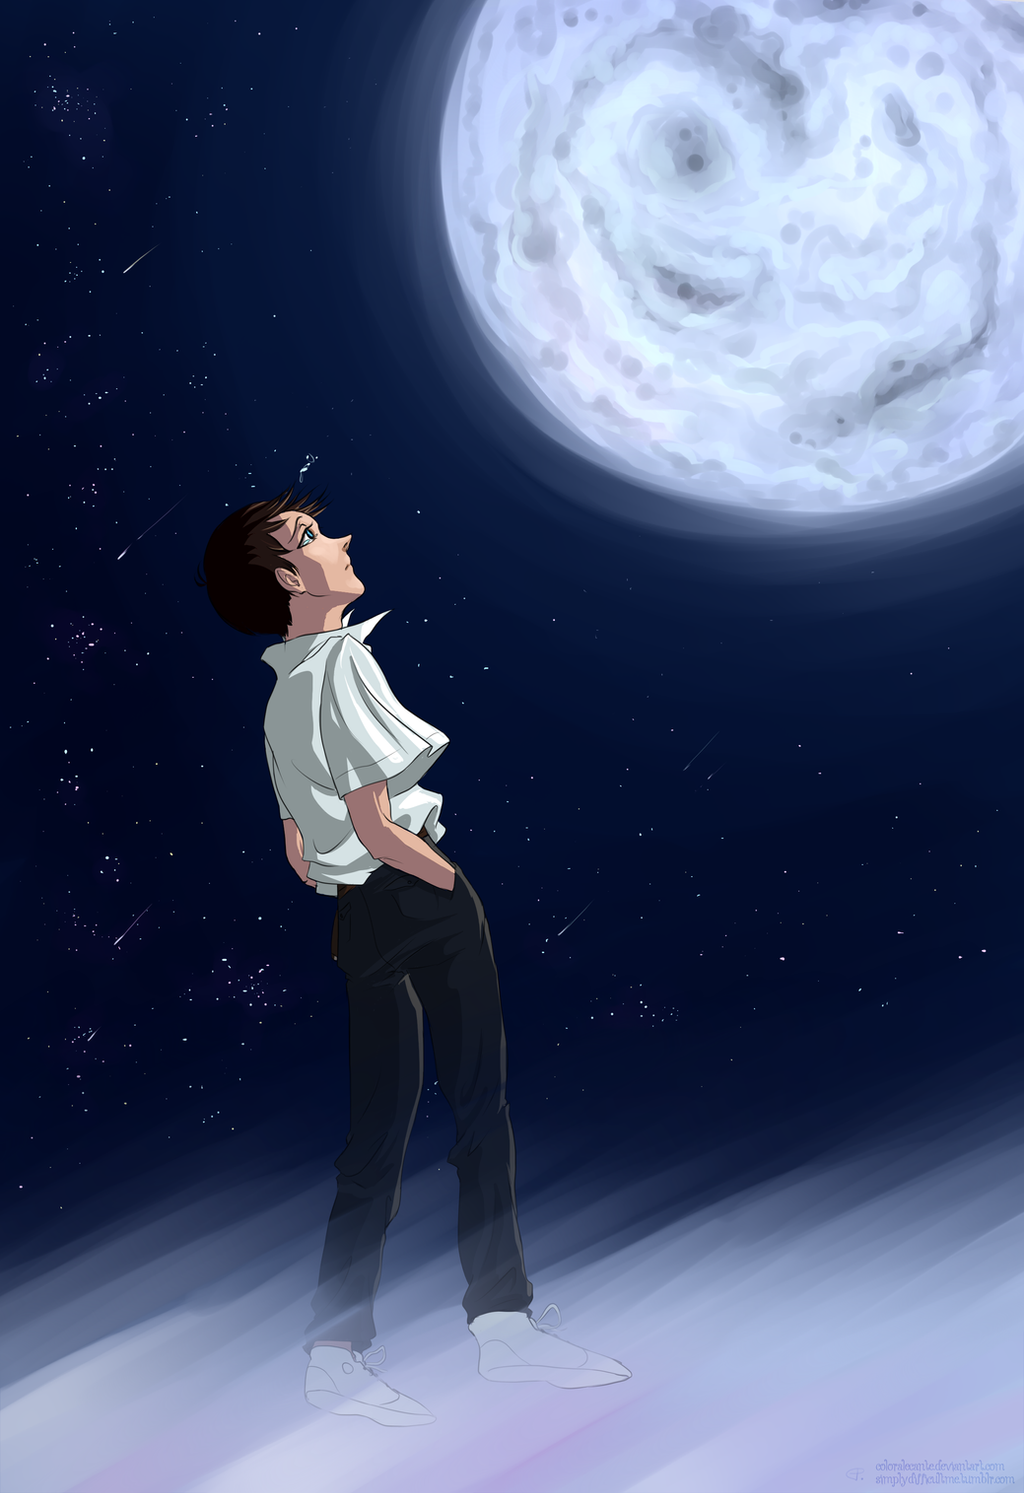 NGE Looking For The Boy In Moon By Coloralecante